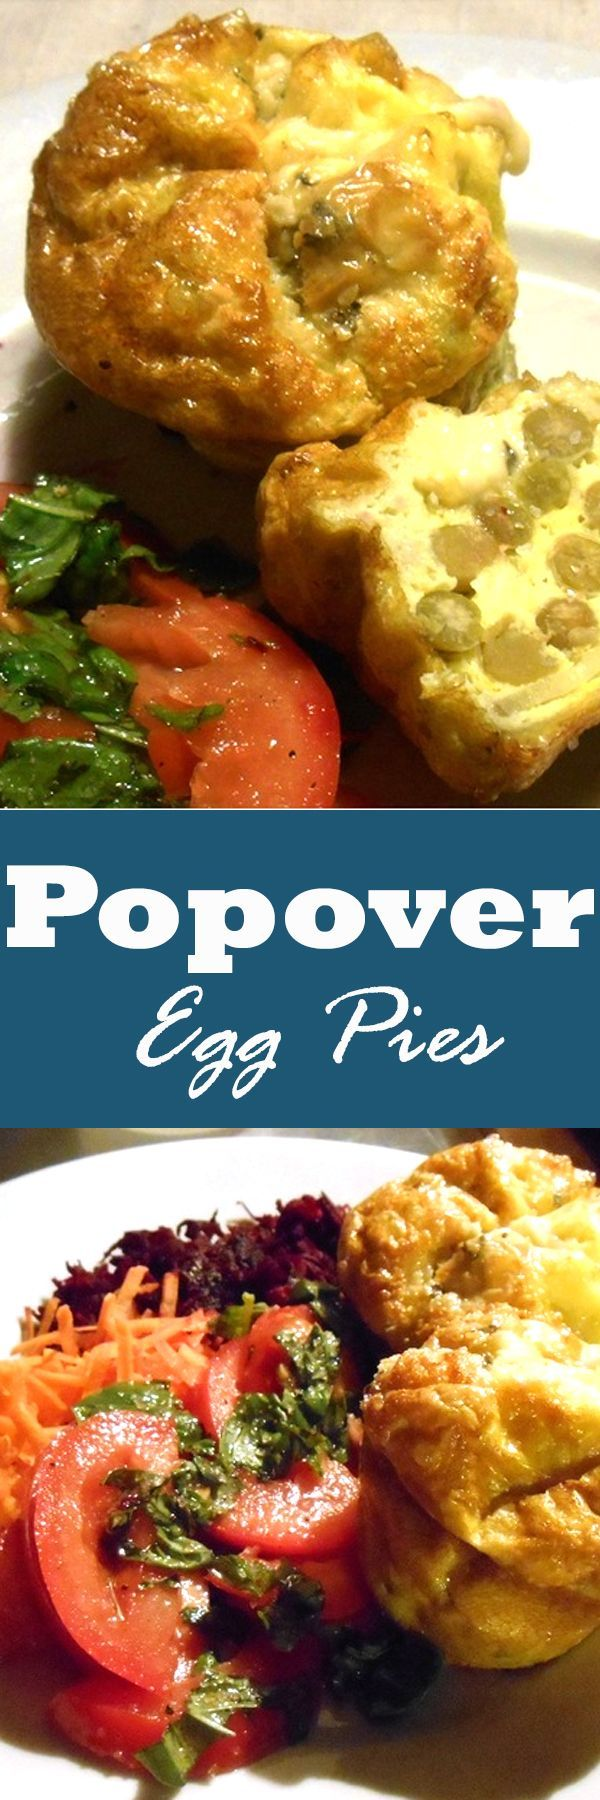 Popover Egg Pies is quite yummy with crumbled goat cheese, potatoes and peas | http://recipezazz.com